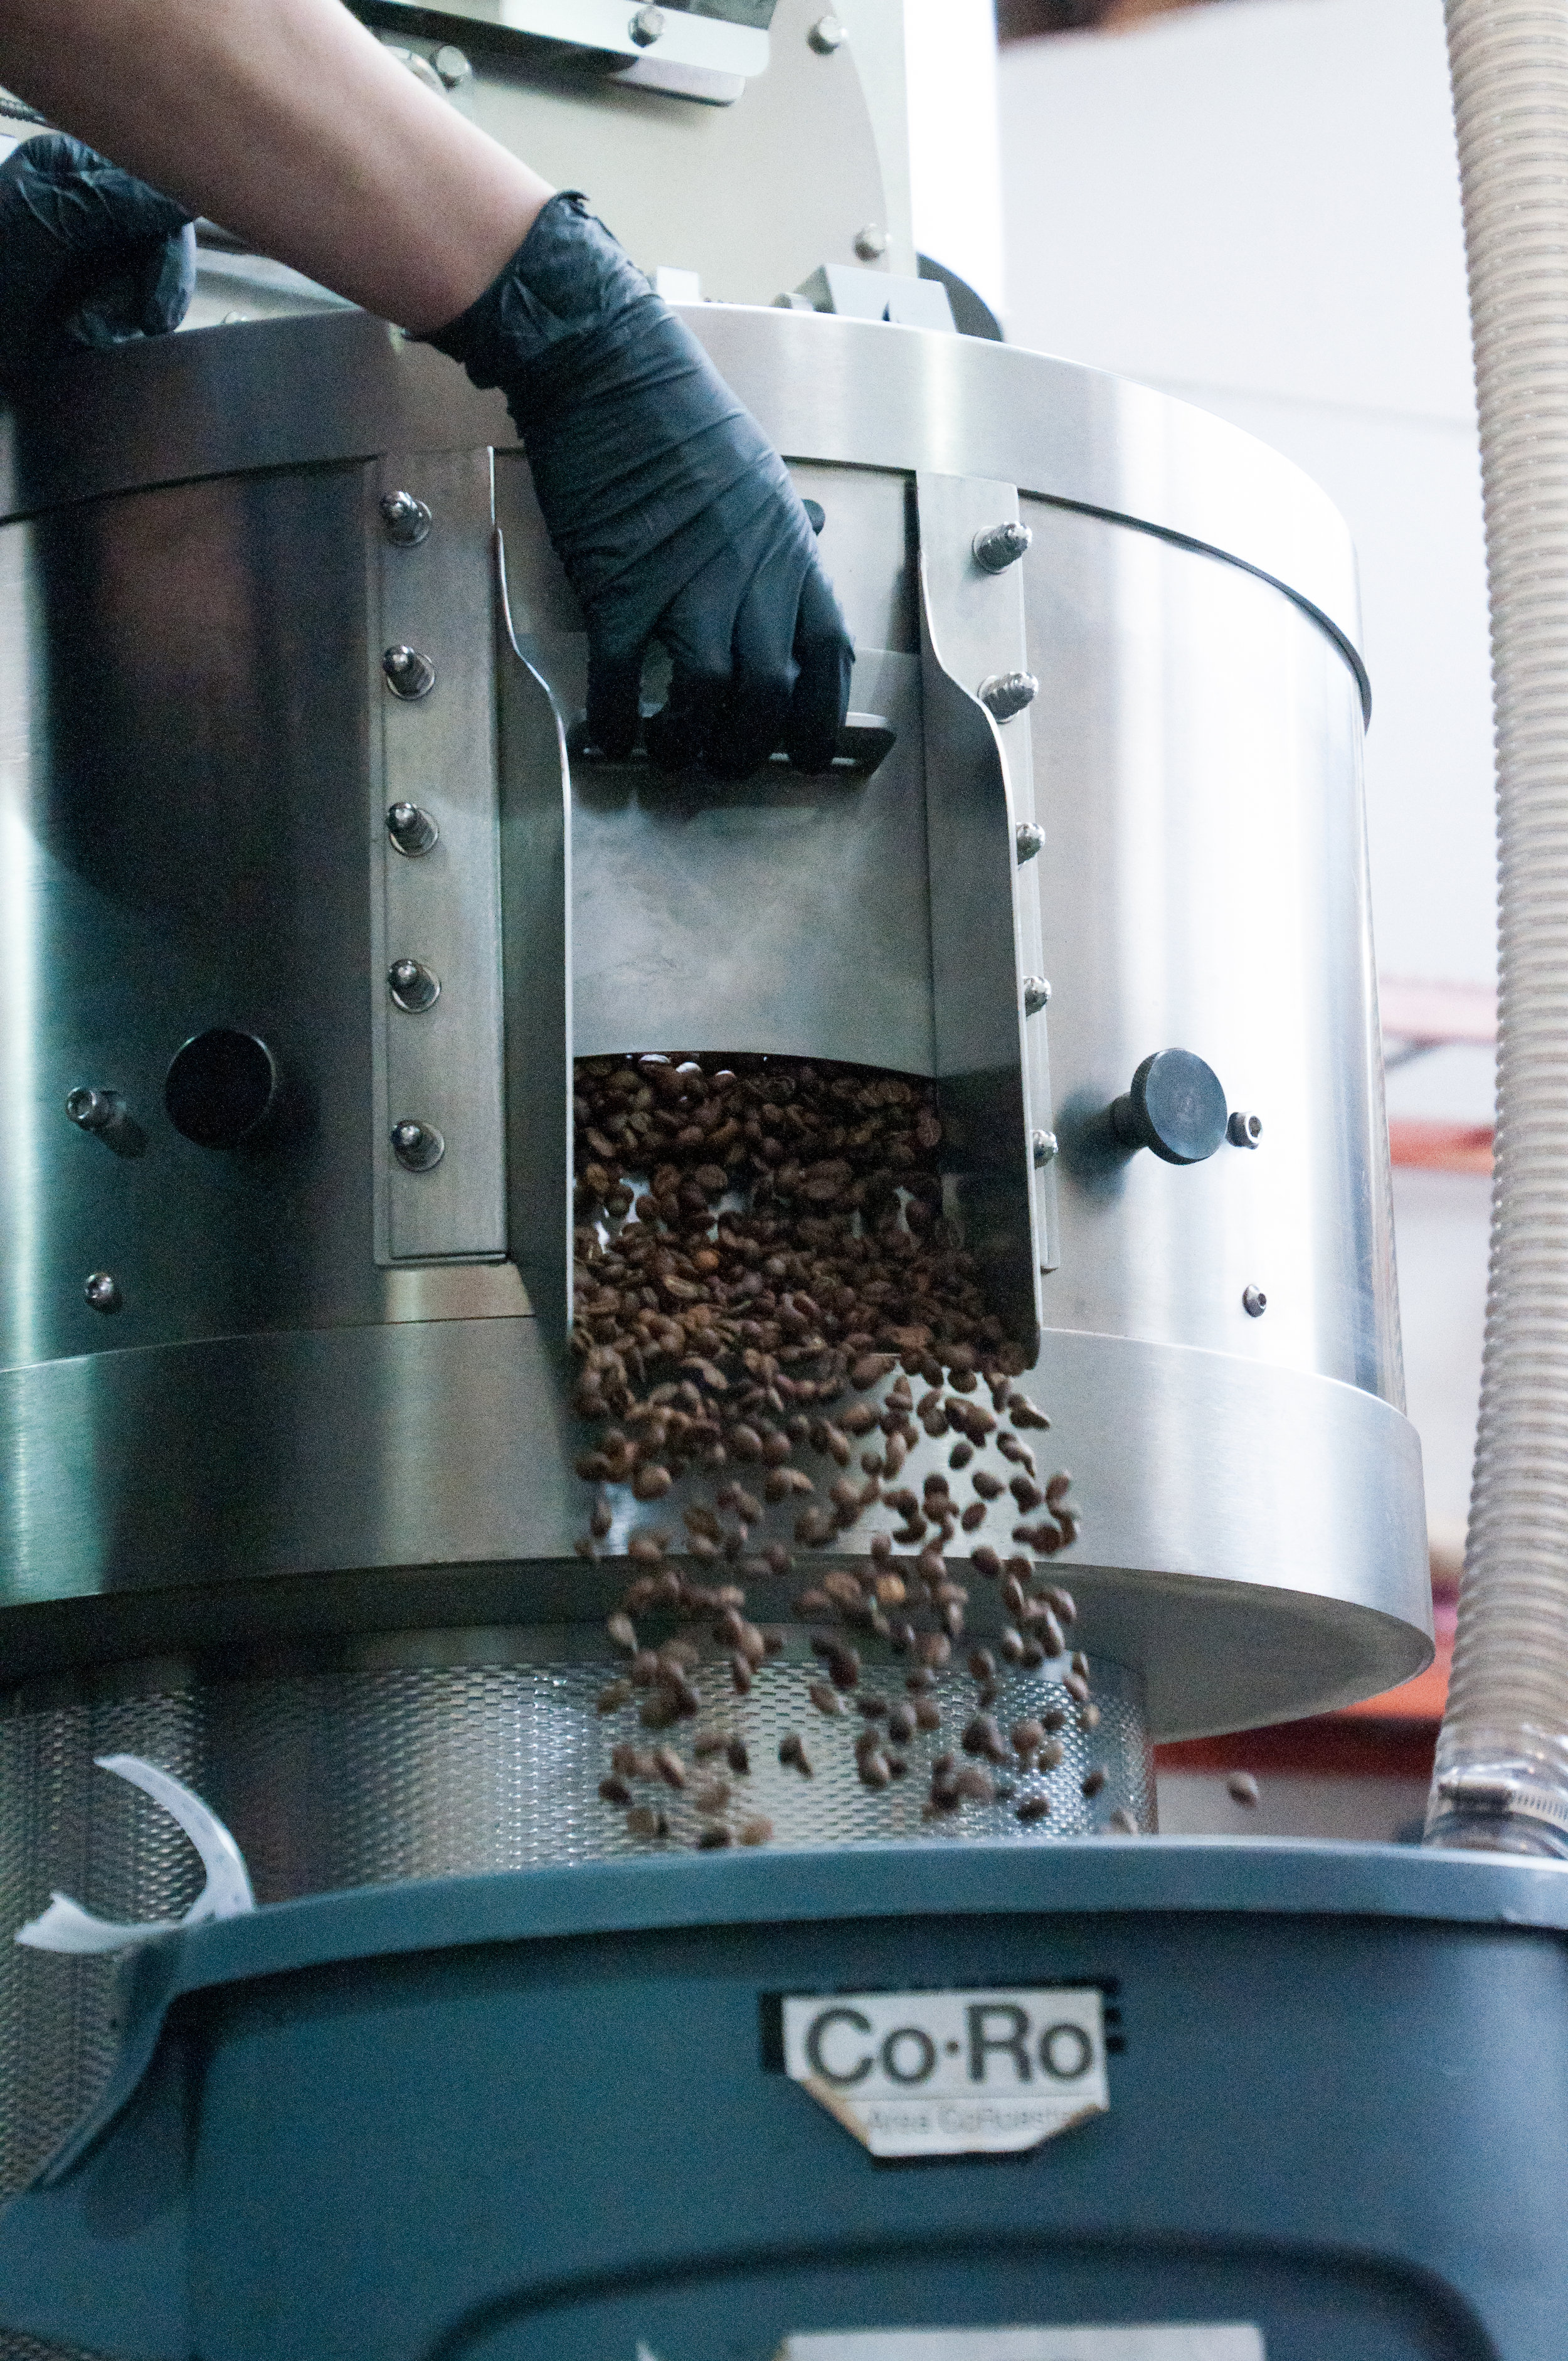 CoRo is home to more than 20 local coffee brands.